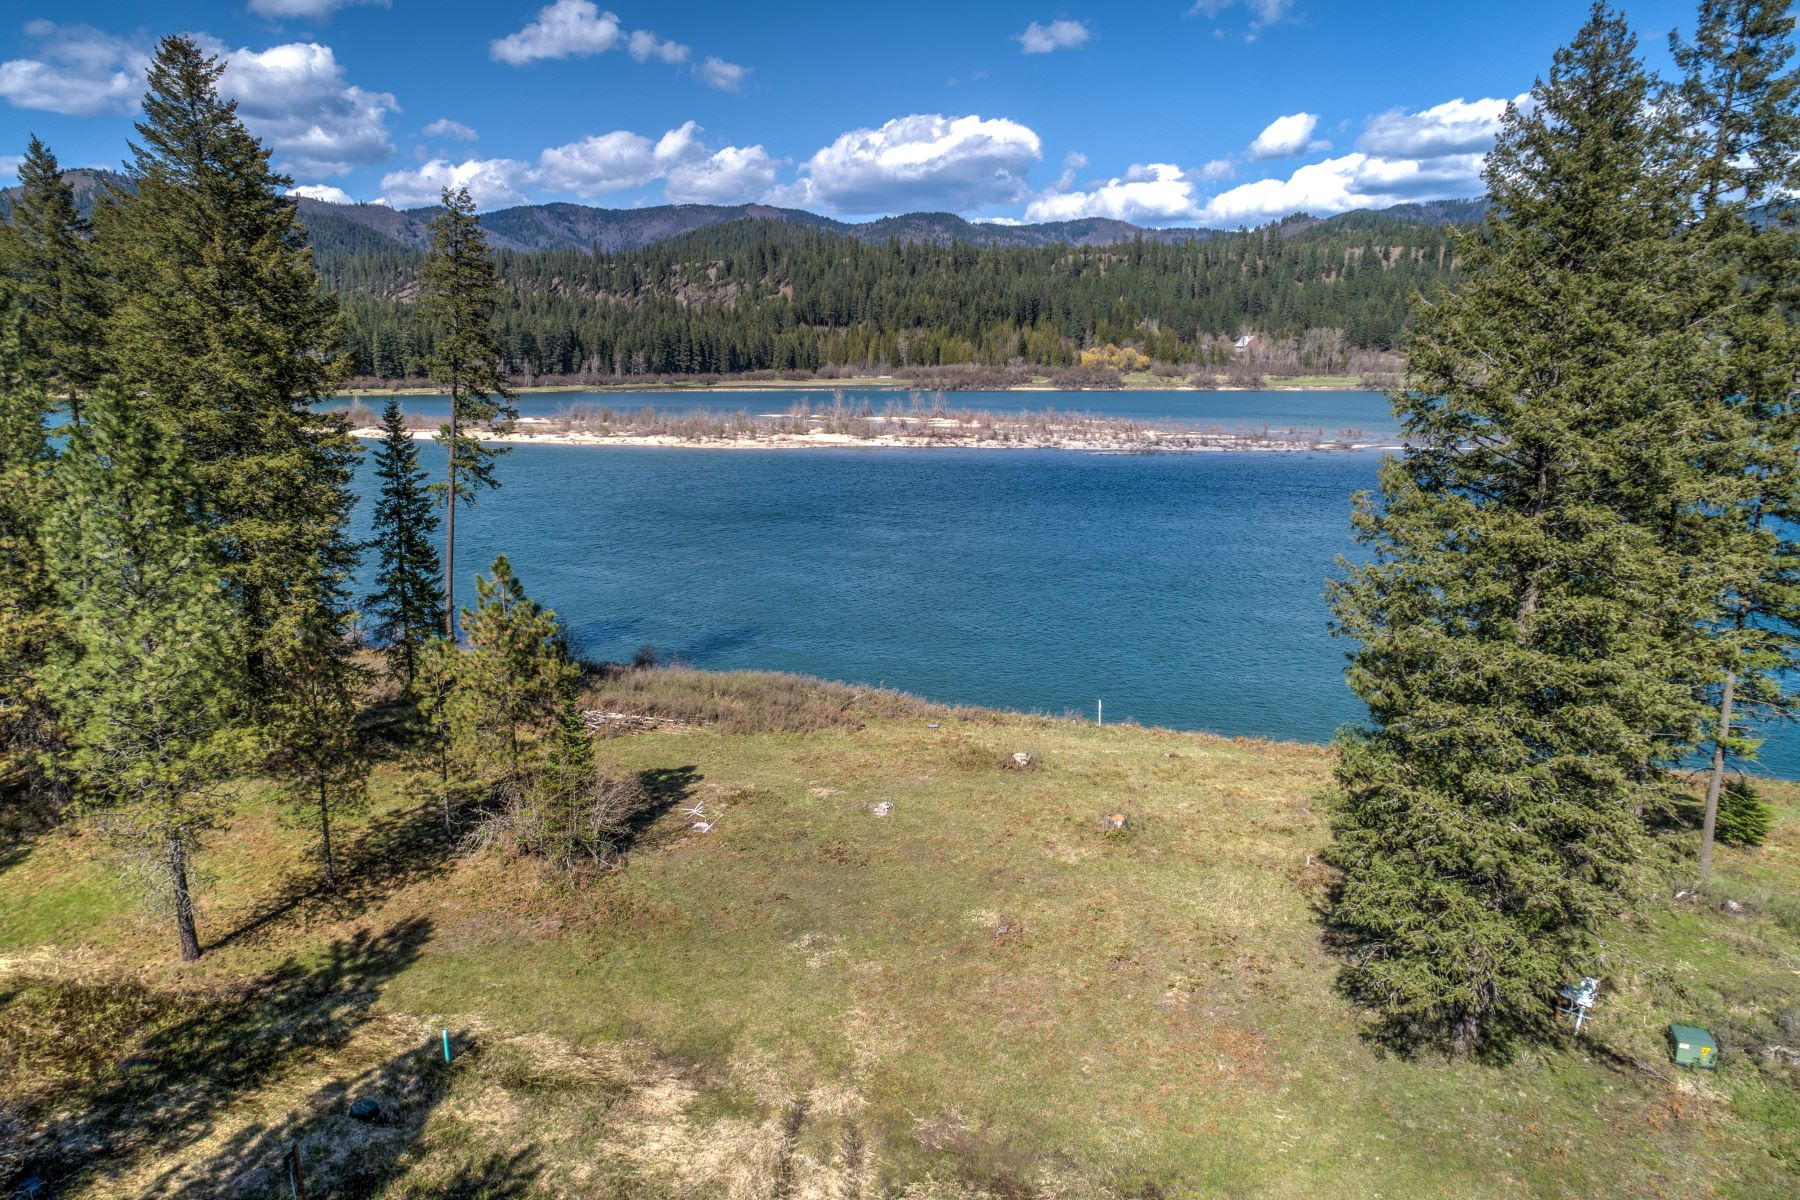 Land for Sale at Pend Oreille Riverfront 1752 Ashenfelter Bay Rd Newport, Washington 99156 United States